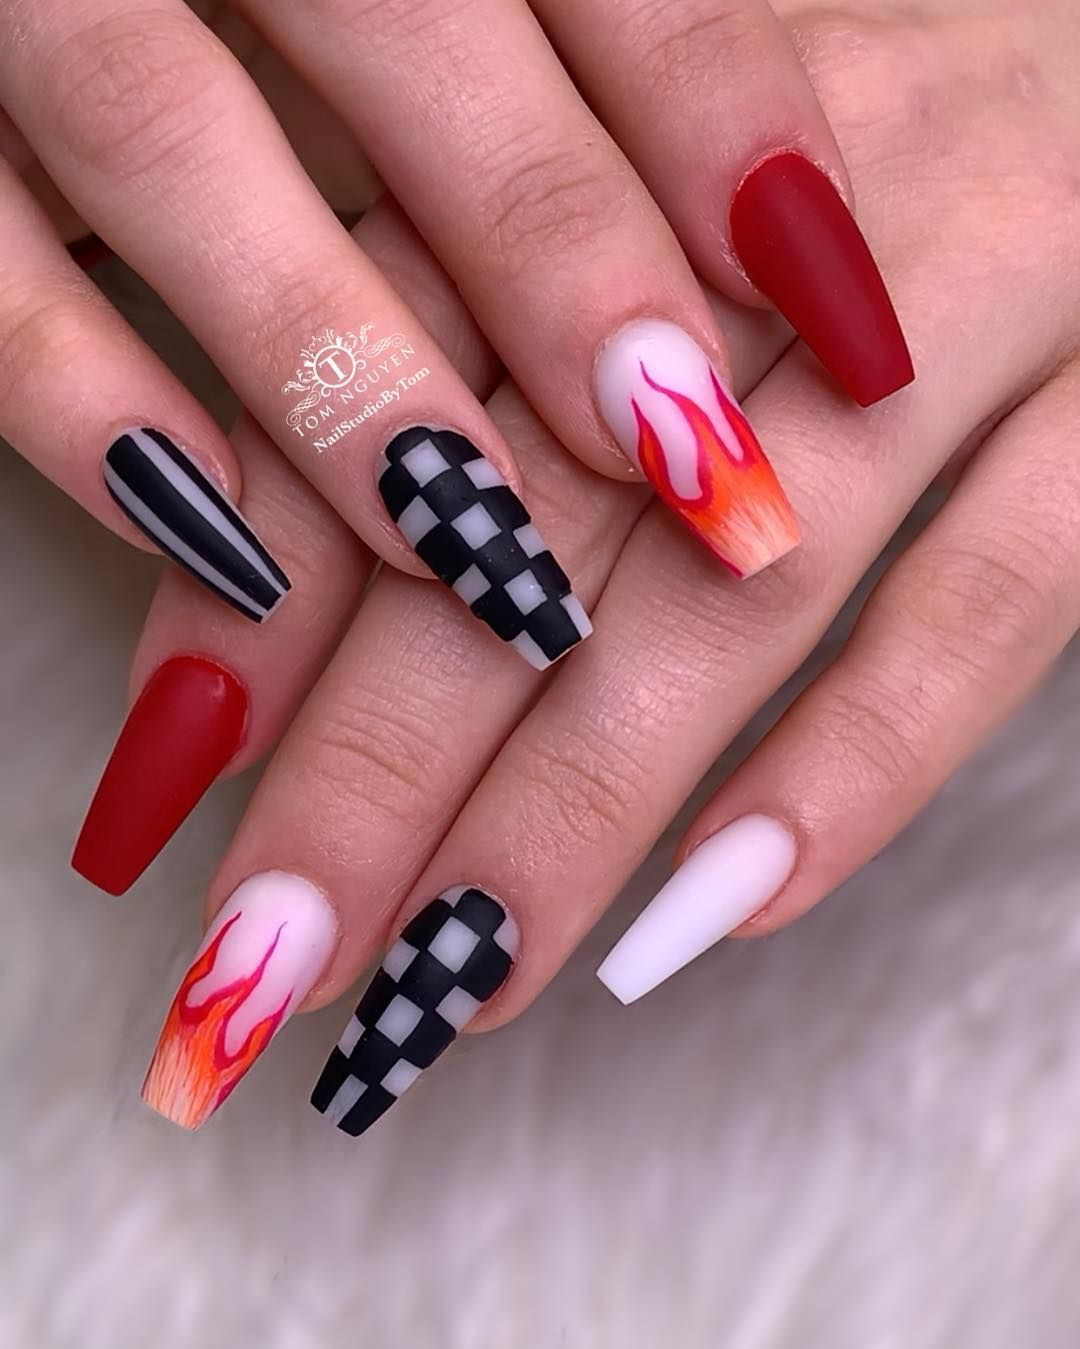 Edgy Nail Look As Requested Leslieleeannn Tag And Share With Your Bestie Edgy Nails Grunge Nails Fire Nails